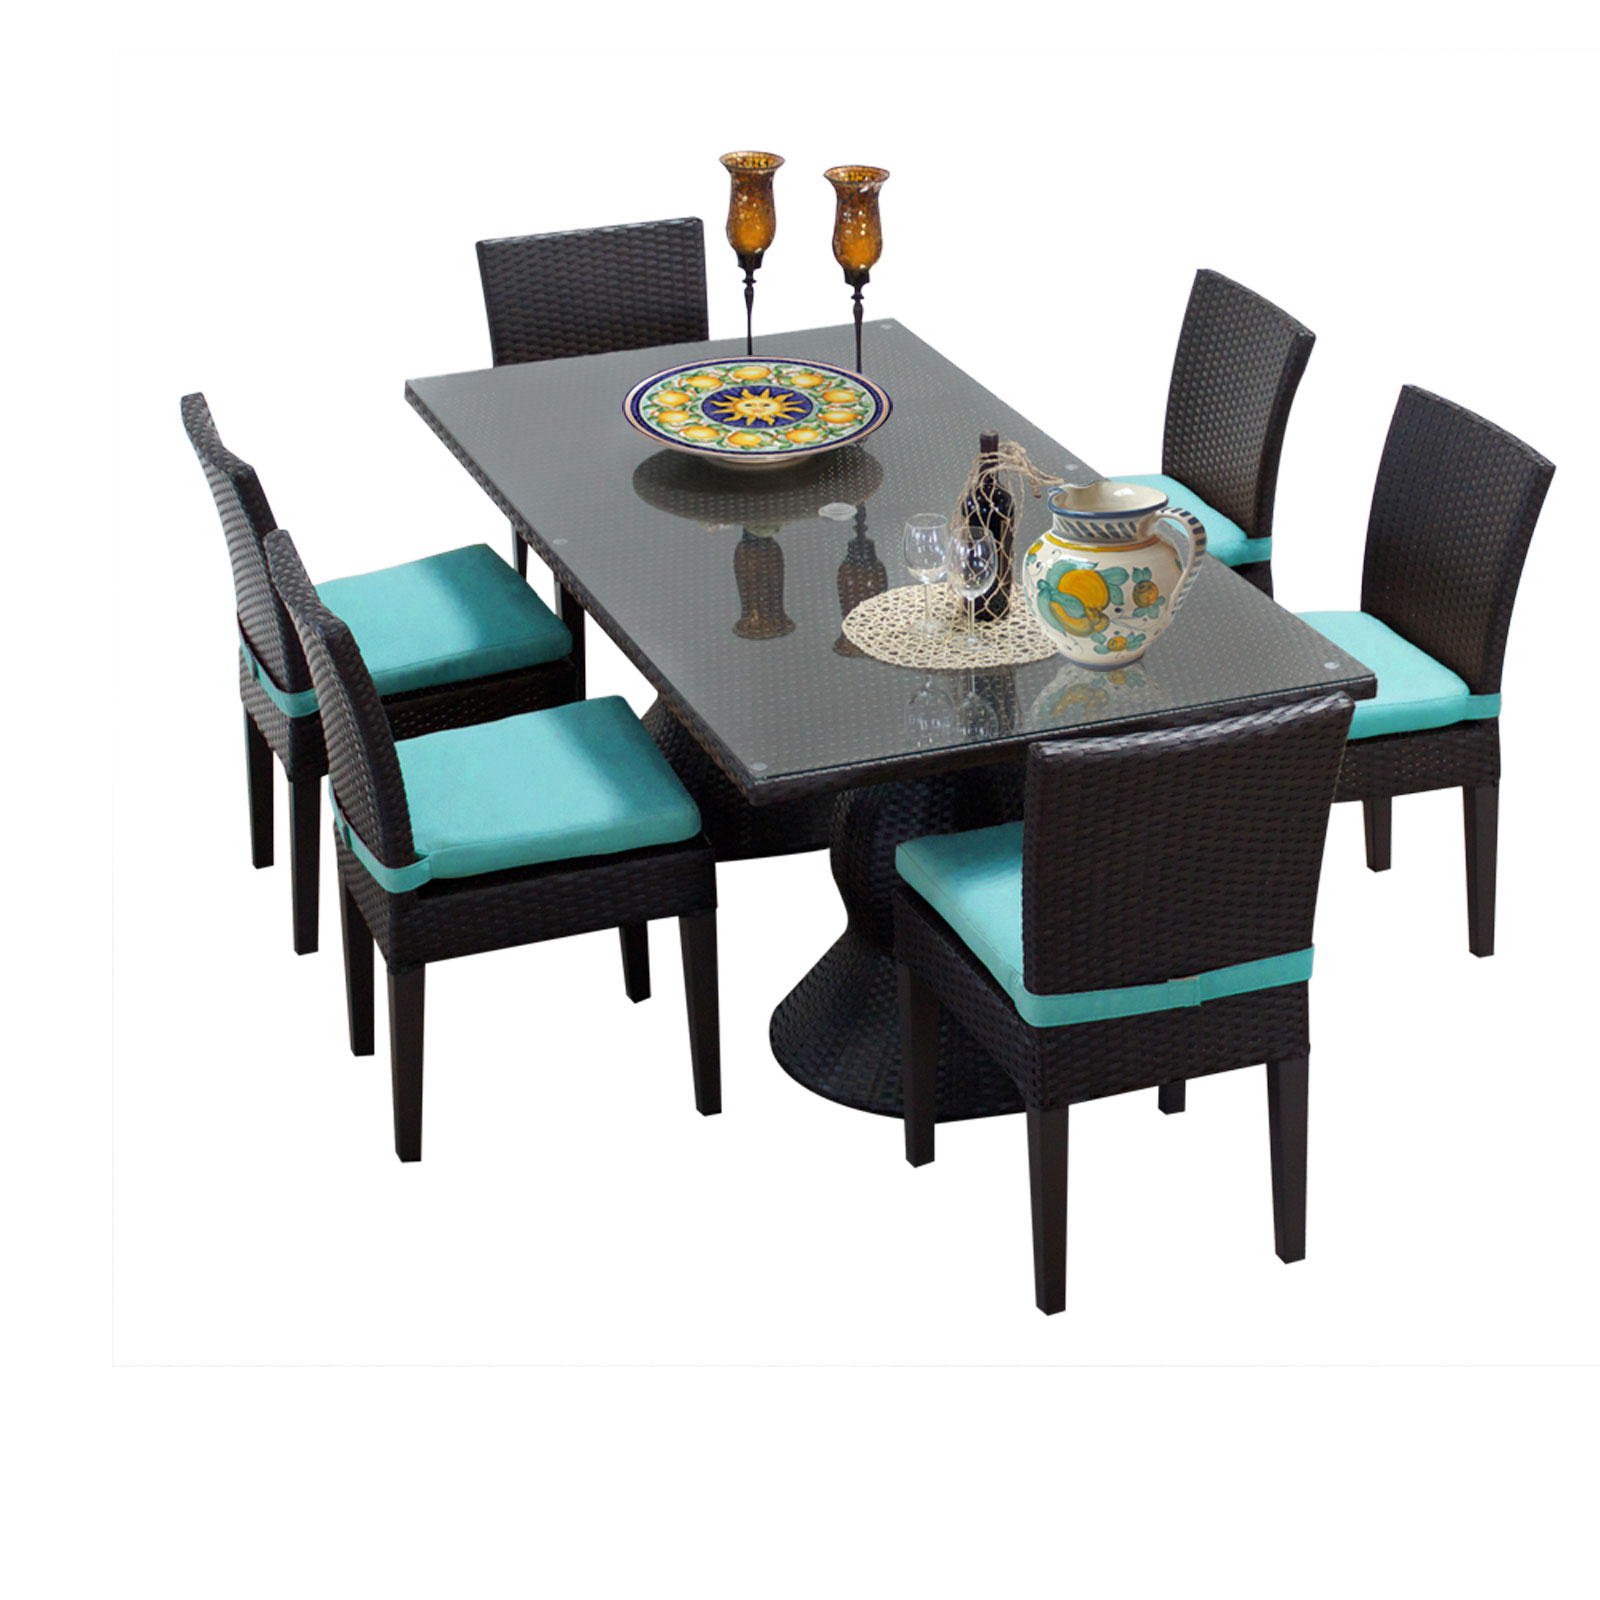 Saturn Rectangular Outdoor Patio Dining Table With 6 Chairs